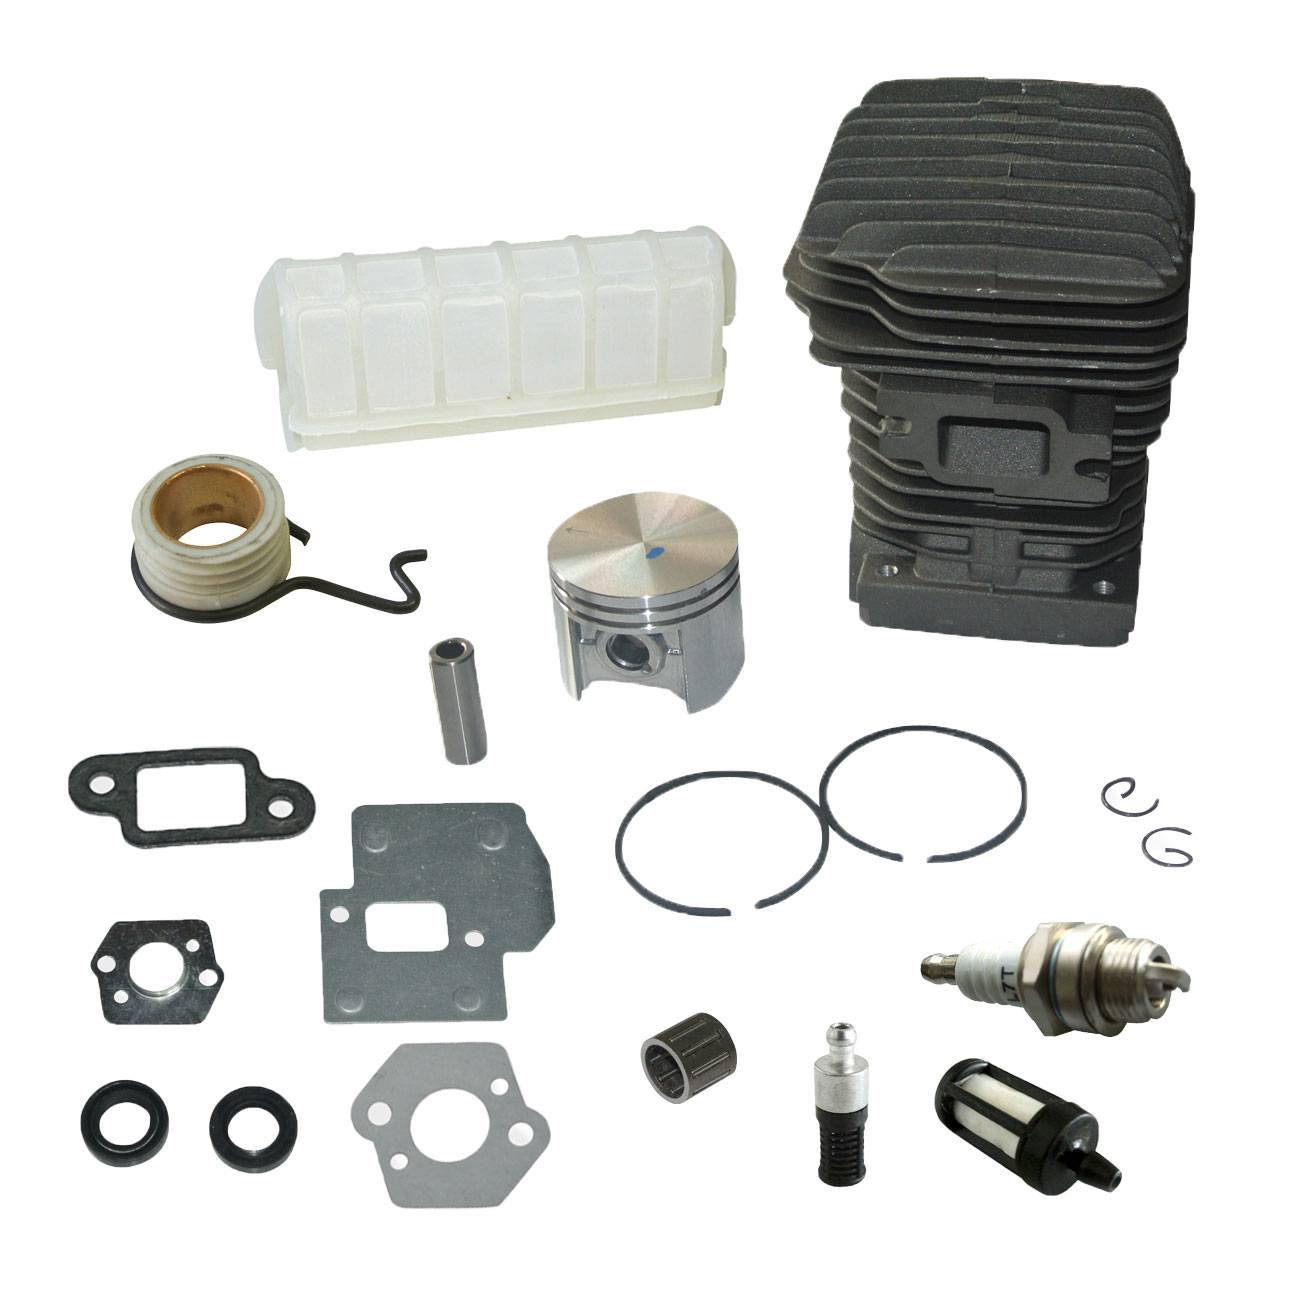 Cyilnder & Piston Kit Fits Stihl 023 025 MS230 MS250 Chainsaw piston